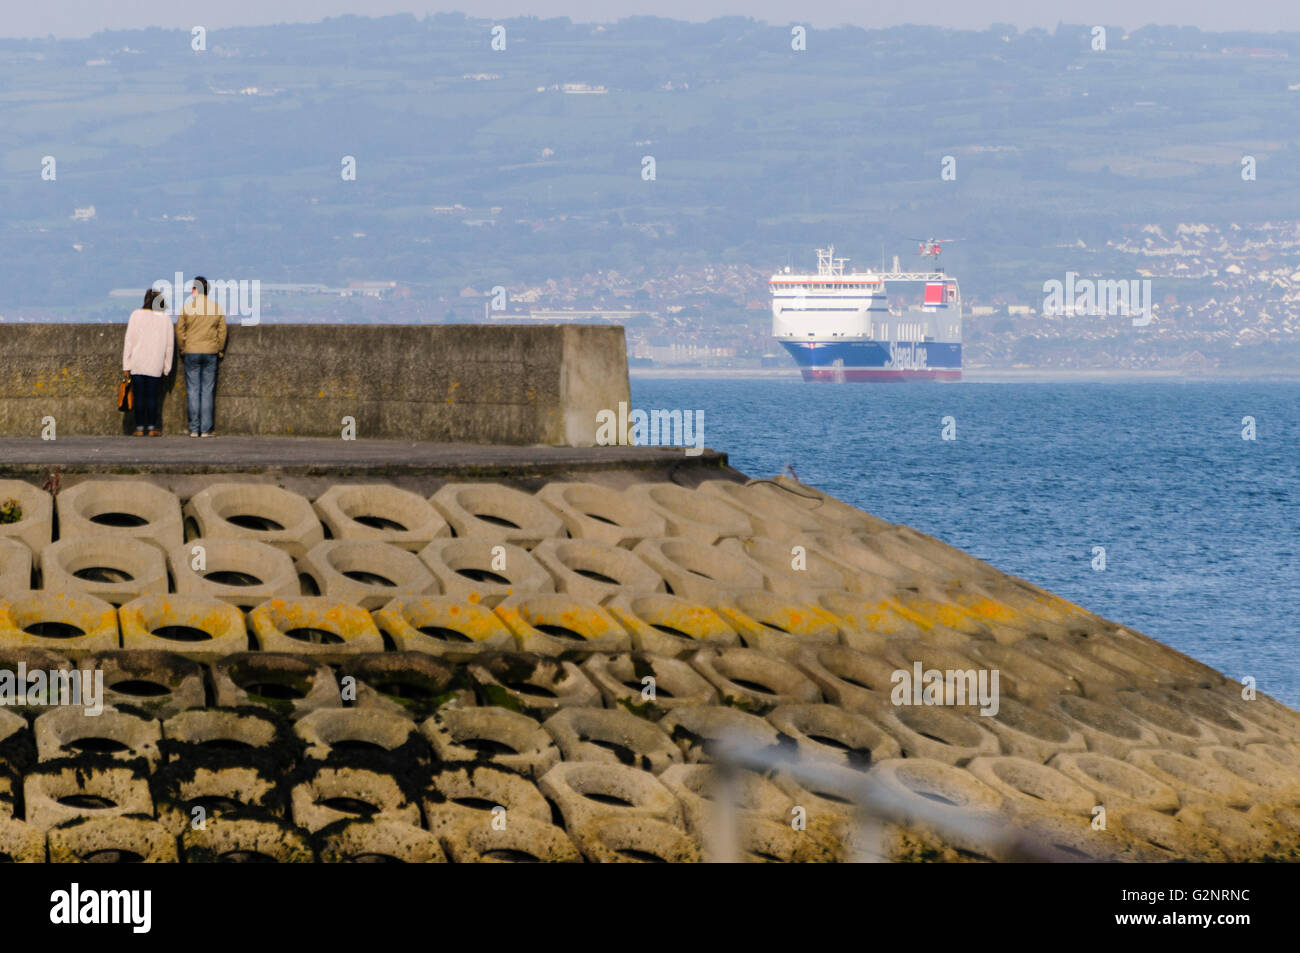 Bangor, County Down. 23/09/2012 - Two members of the public stand at the end of a pier, watching a large Stena Line Stock Photo